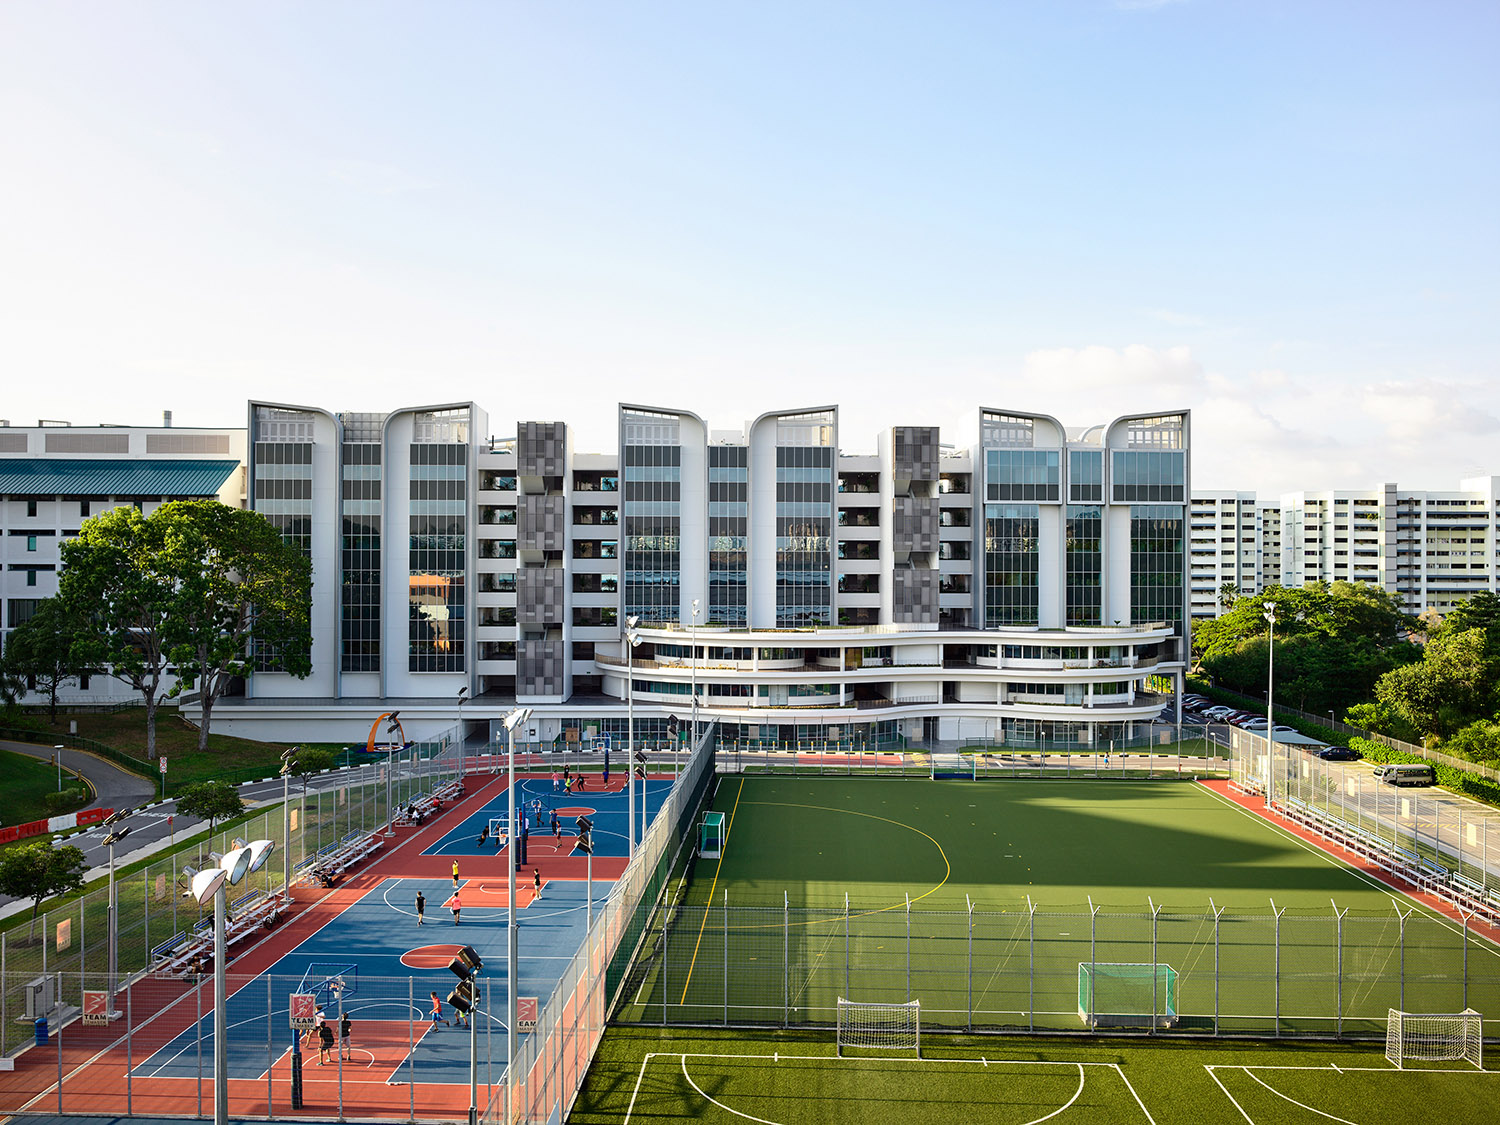 Elevation of East Wing facing sports courts